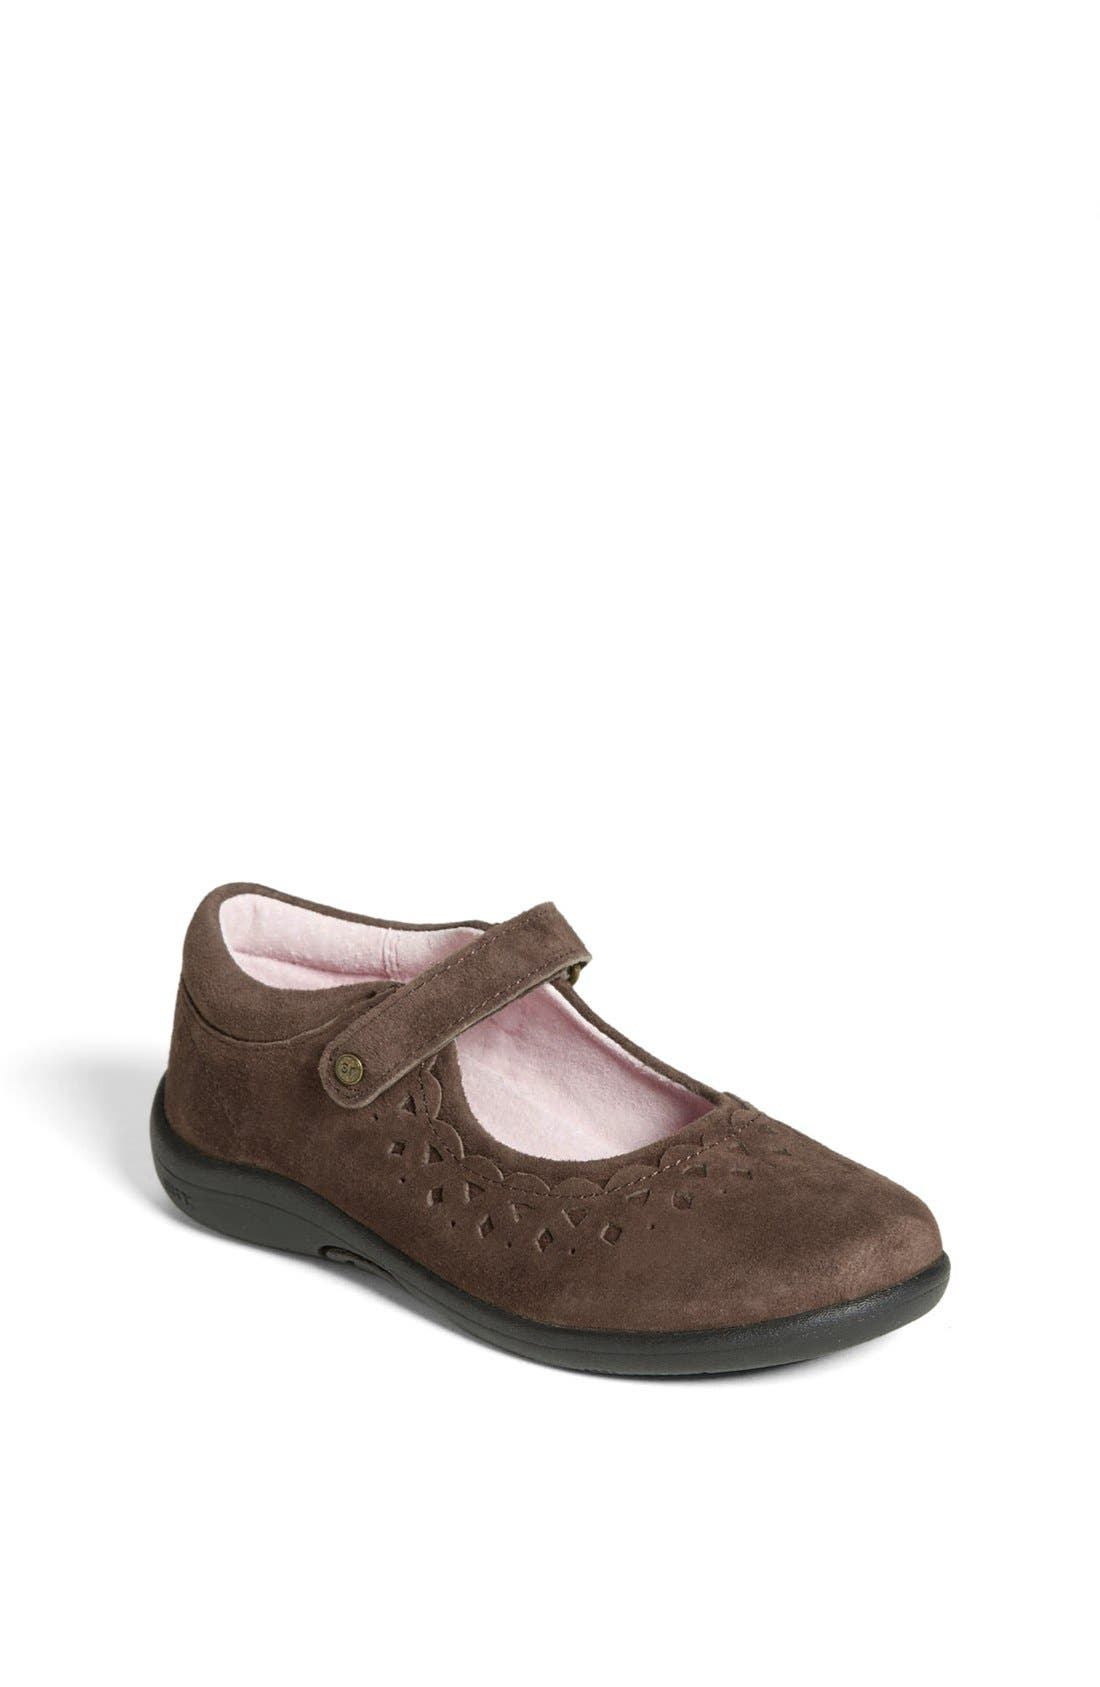 Alternate Image 1 Selected - Stride Rite 'Cora' Mary Jane (Online Only) (Toddler & Little Kid)